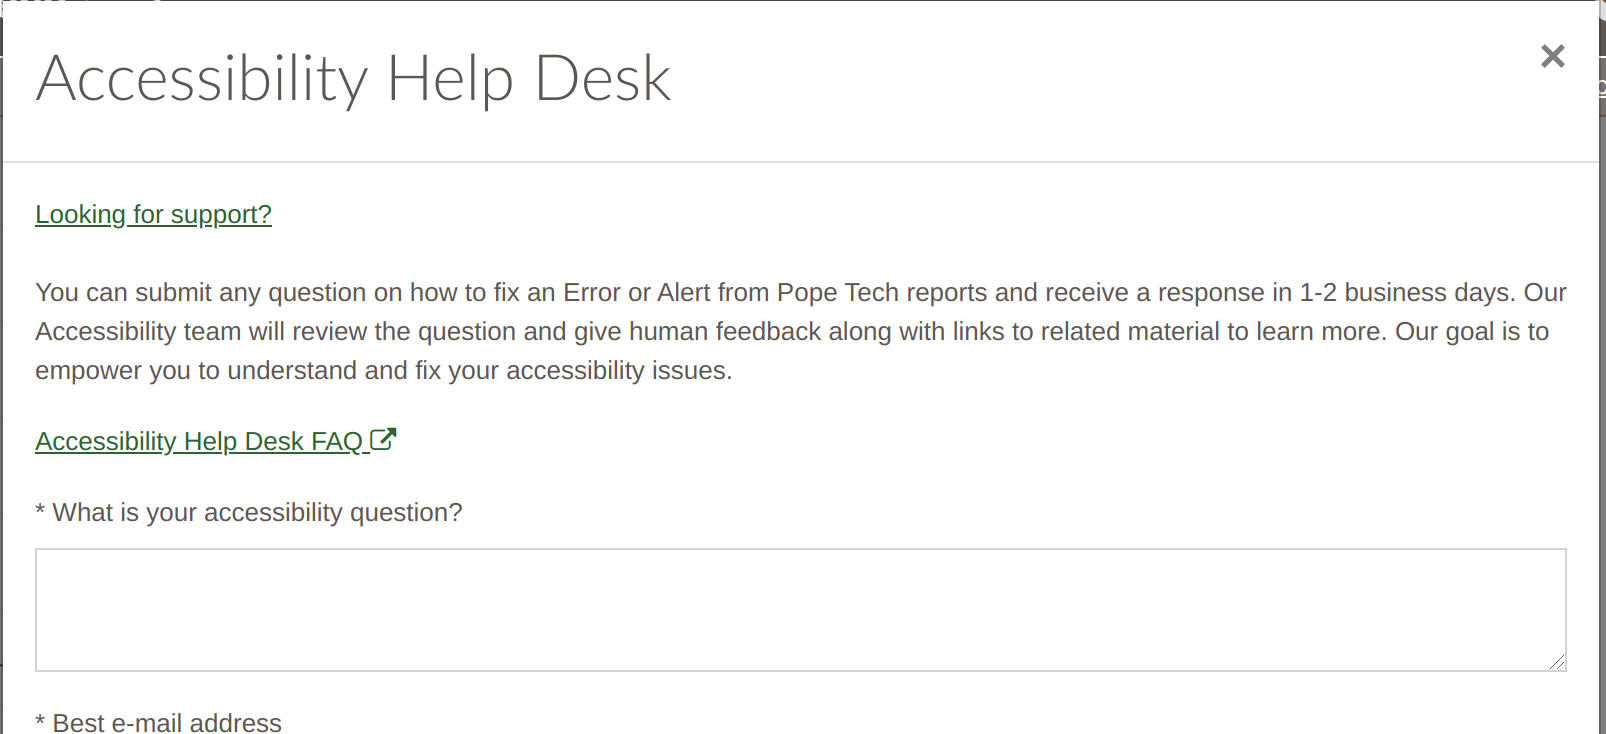 Accessibility Help desk form with instructions for asking for accessibility help